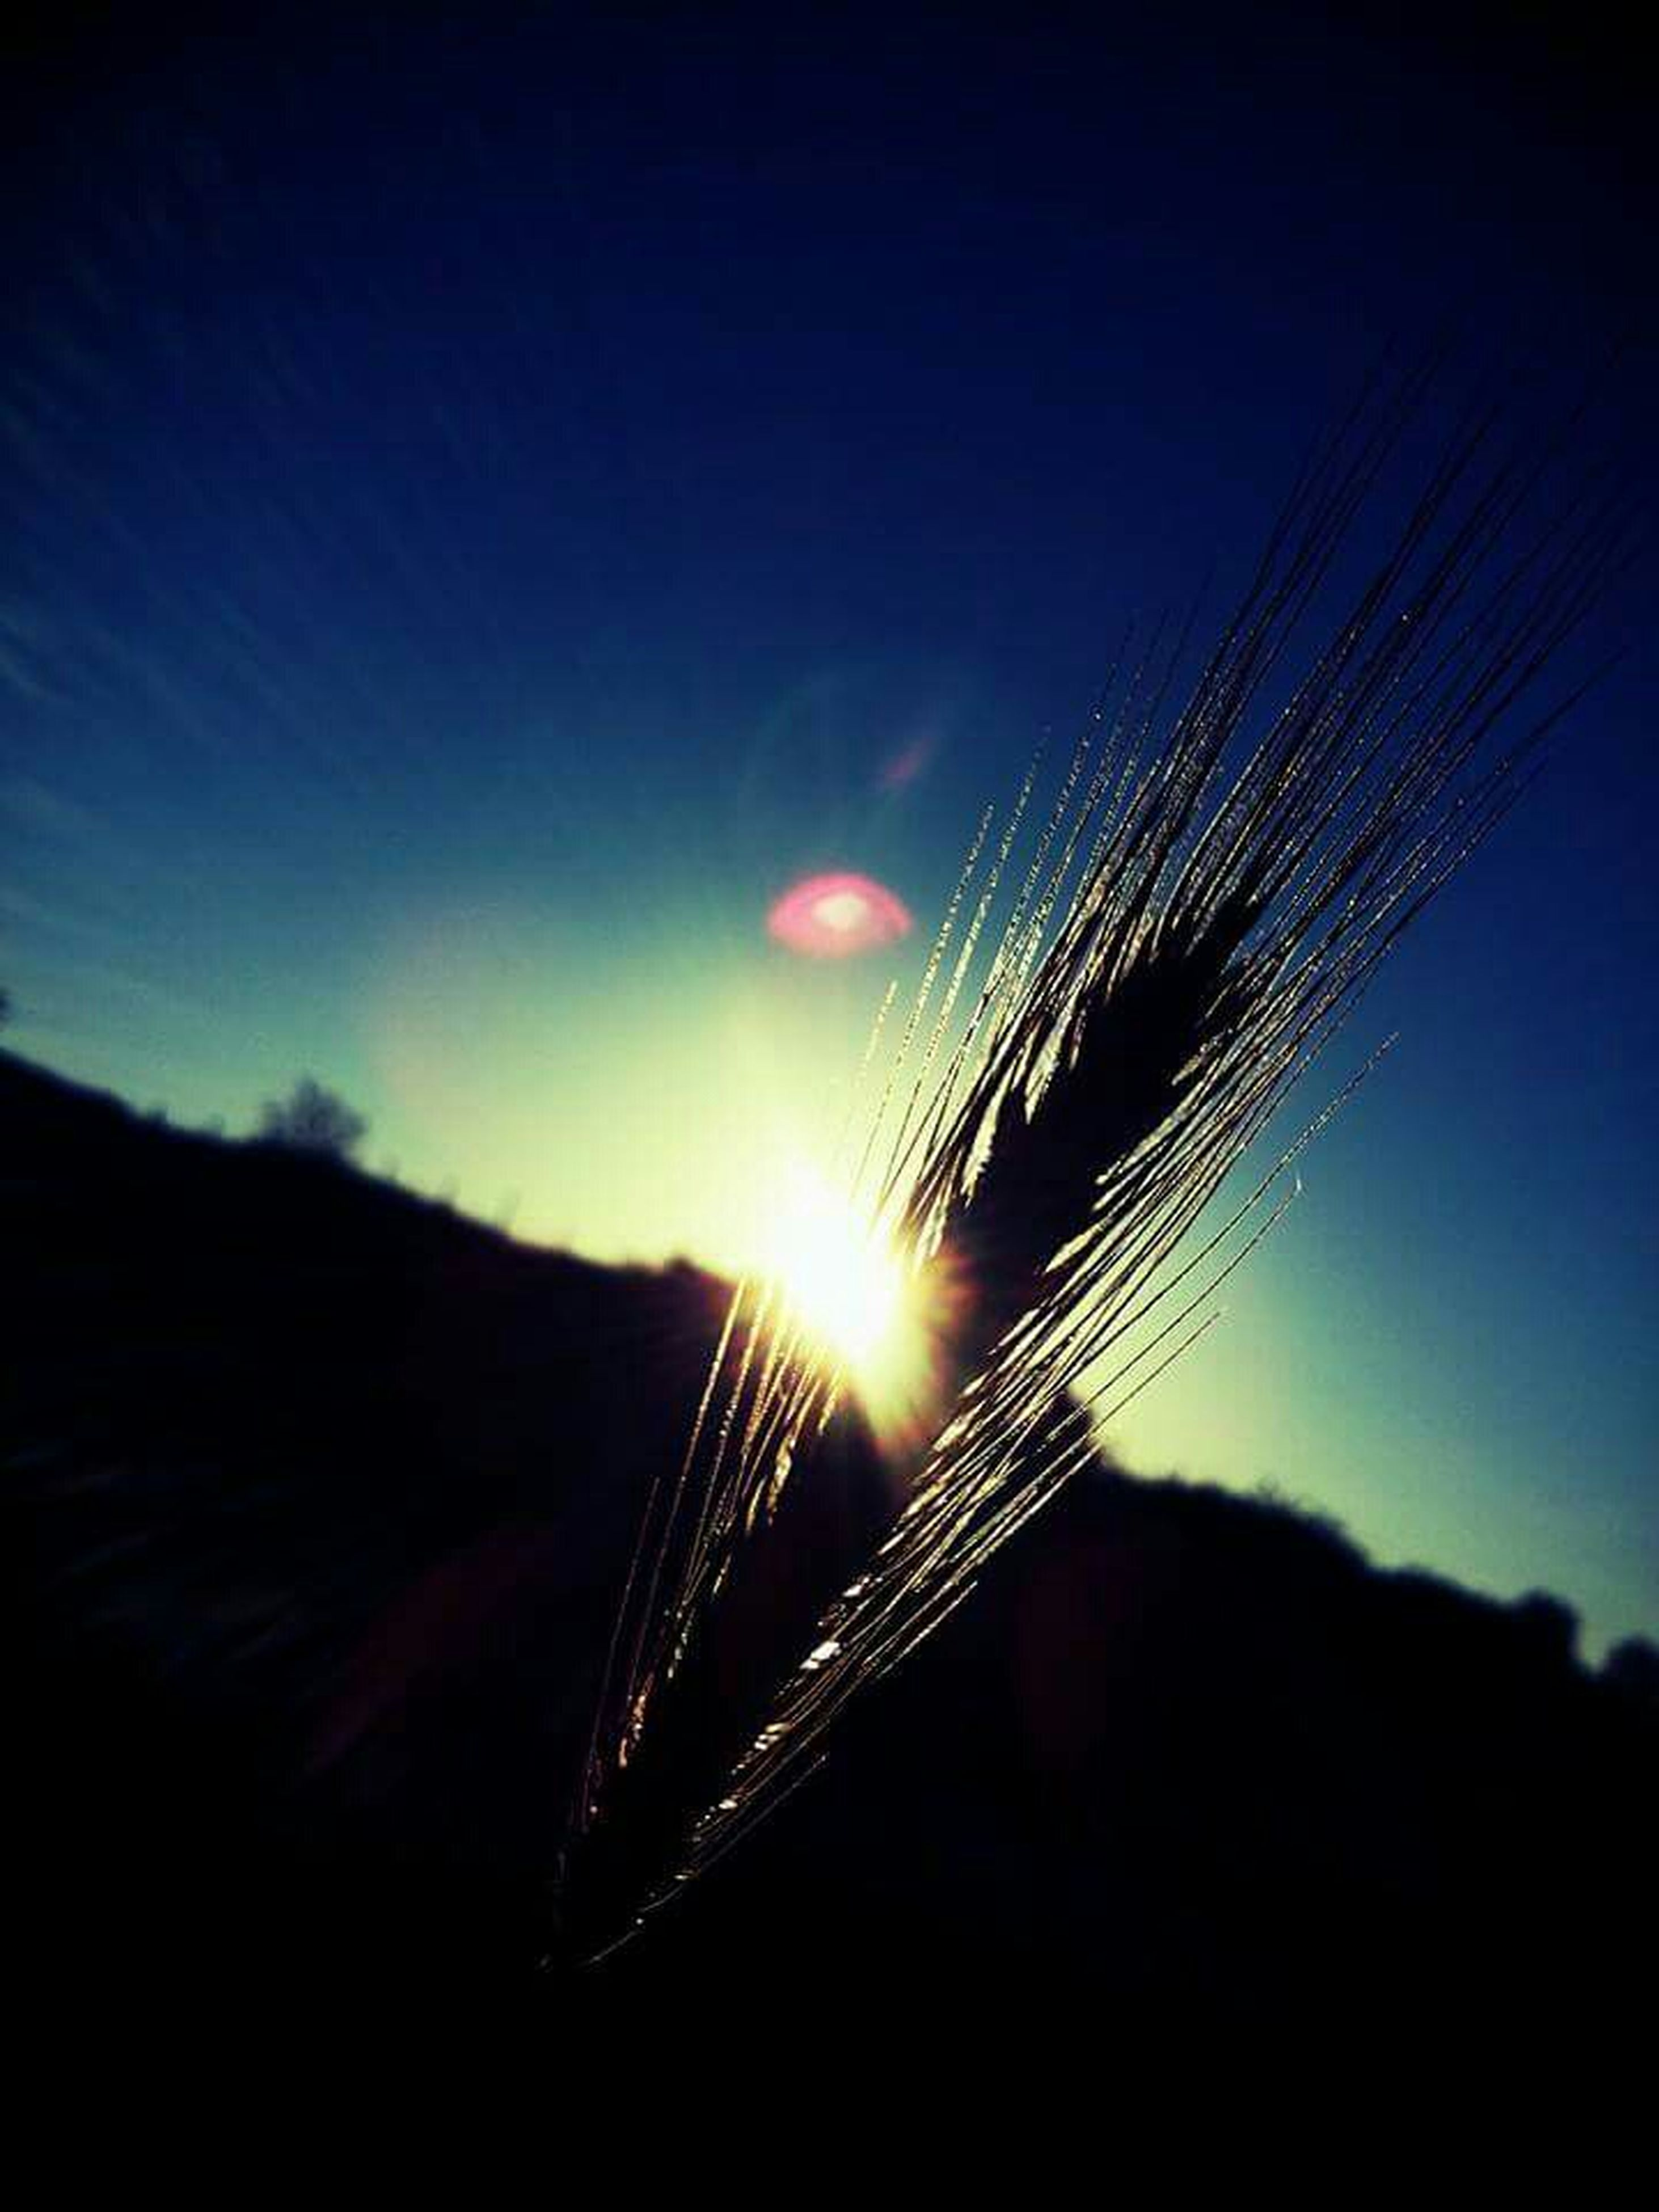 silhouette, sun, sky, low angle view, clear sky, sunset, close-up, nature, beauty in nature, lens flare, focus on foreground, outdoors, copy space, no people, spider web, sunlight, fragility, night, tranquility, plant